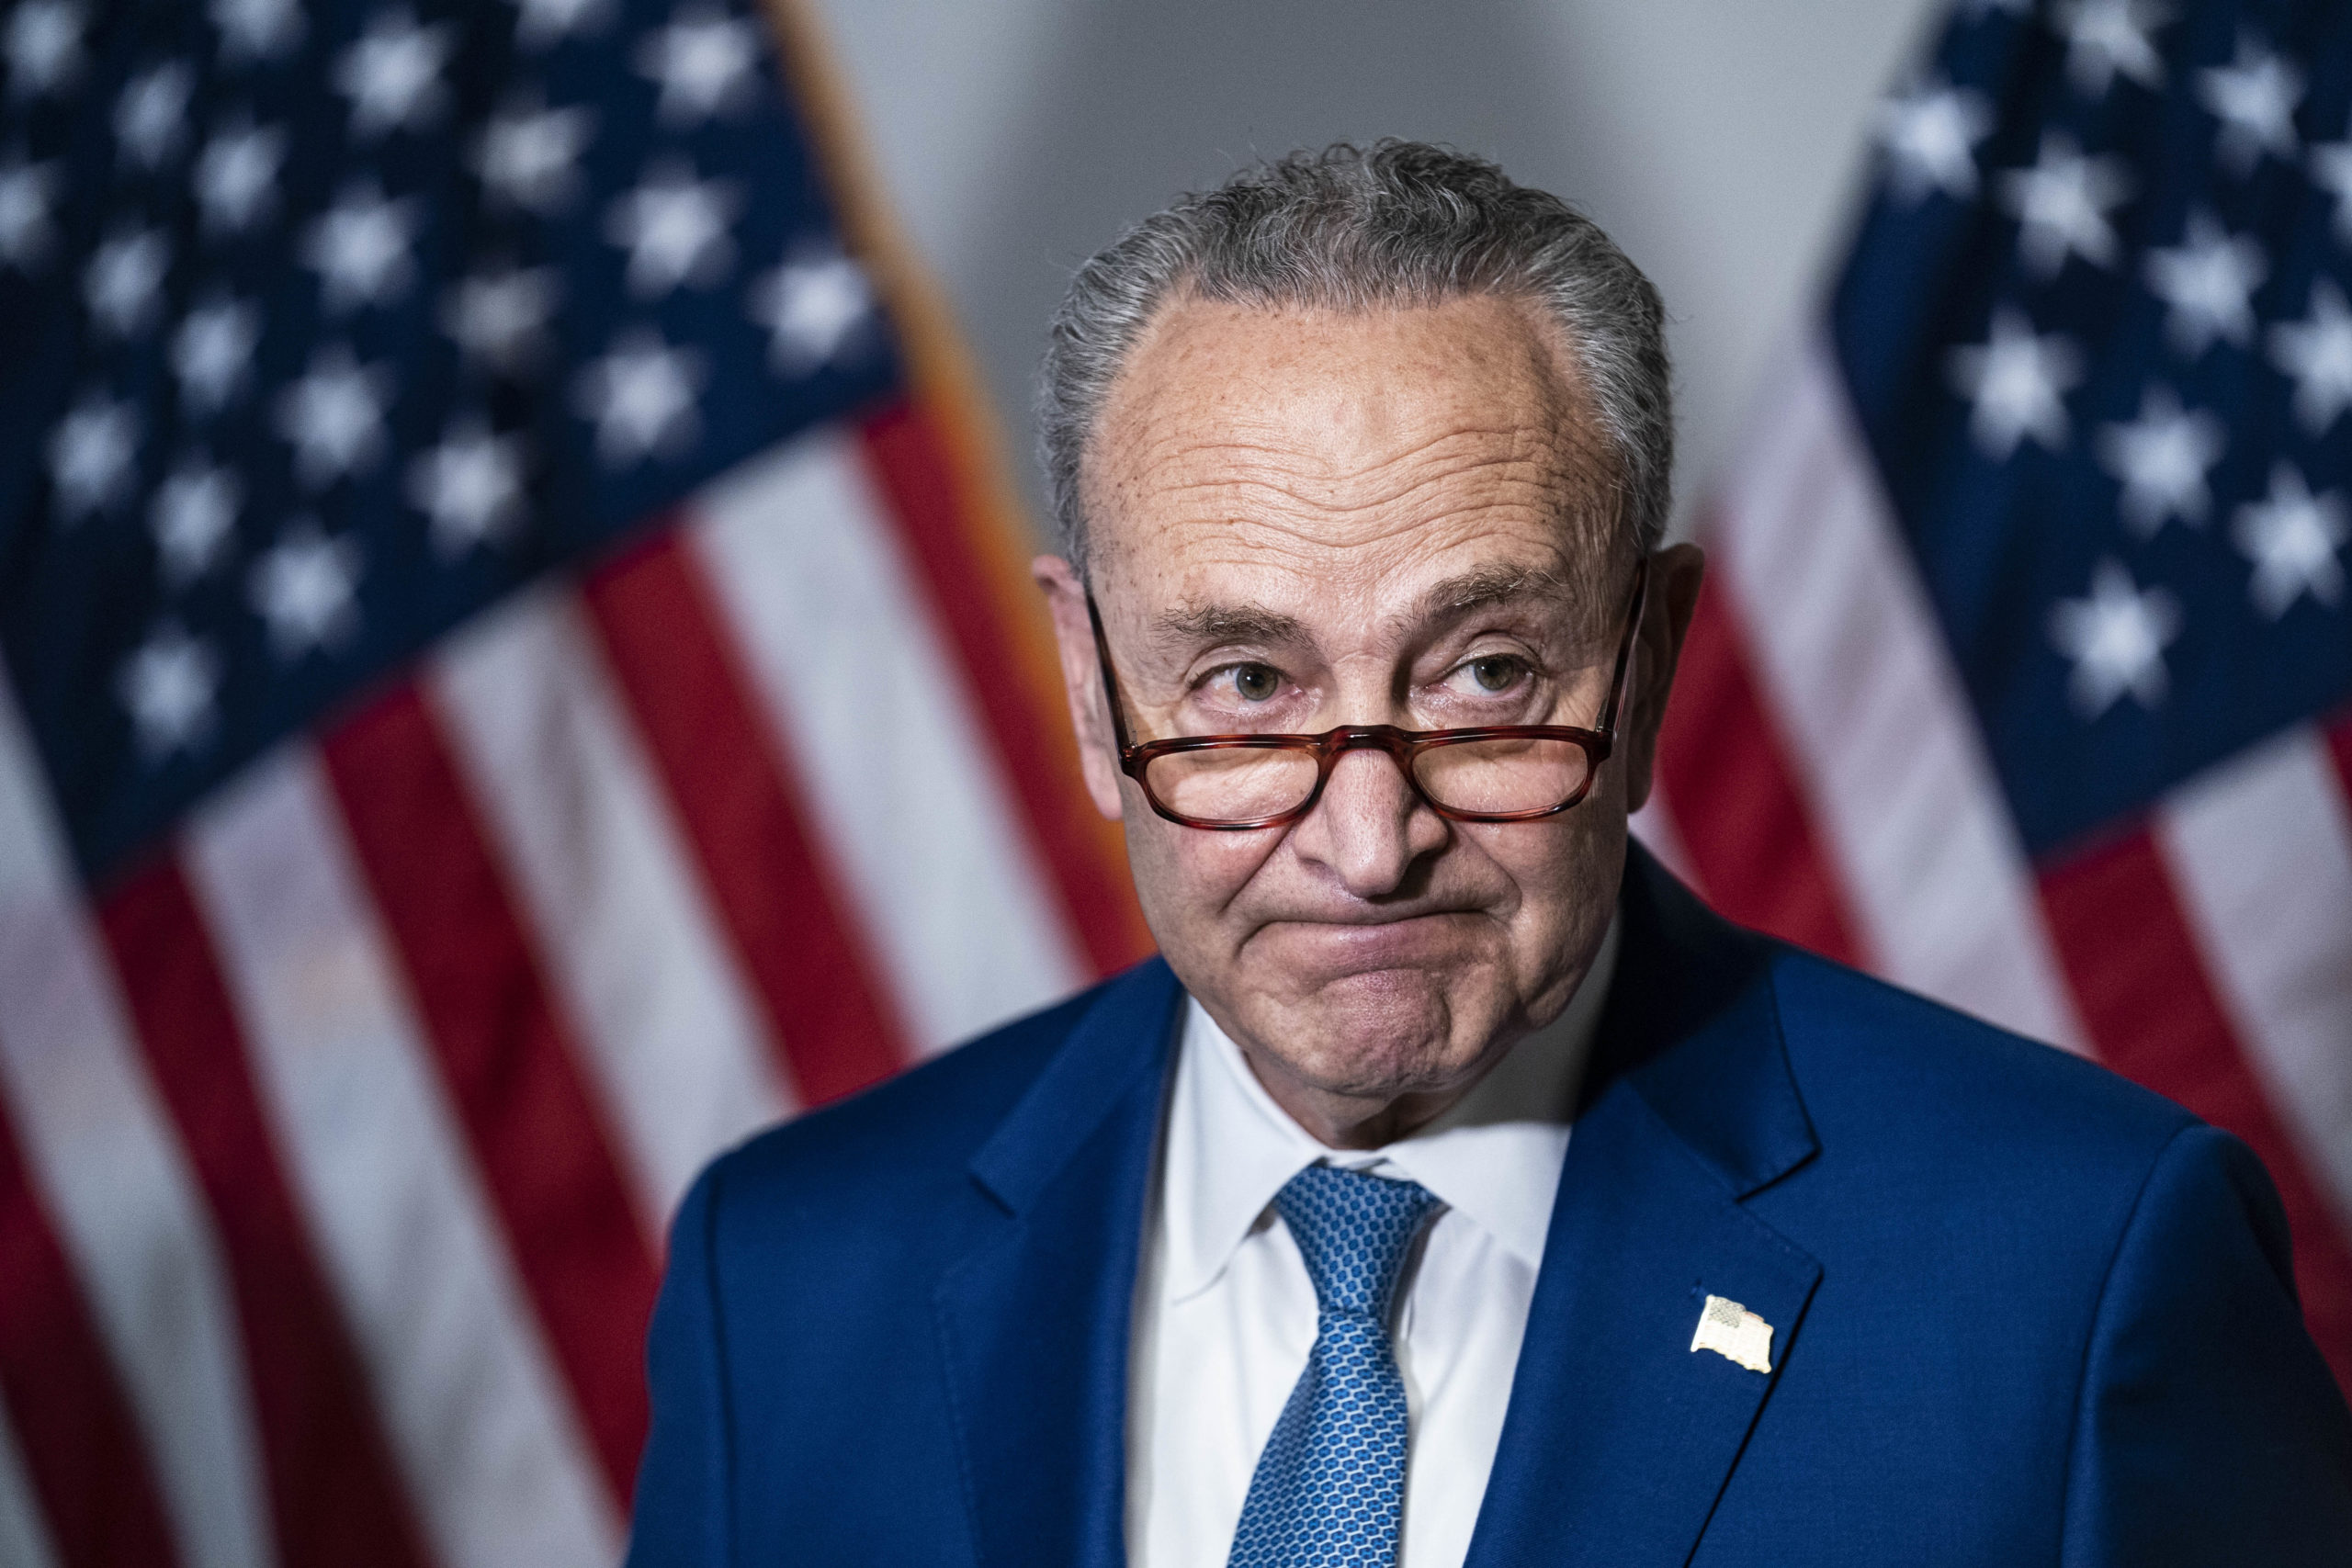 WASHINGTON, DC - APRIL 20: Senate Majority Leader Chuck Schumer (D-NY) speaks during a news conference following the weekly Democrat policy luncheon on Capitol Hill on April 20, 2021 in Washington, DC. The Democratic Senators spoke about the COVID-19 Hate Crimes Act. (Photo by Sarah Silbiger/Getty Images)